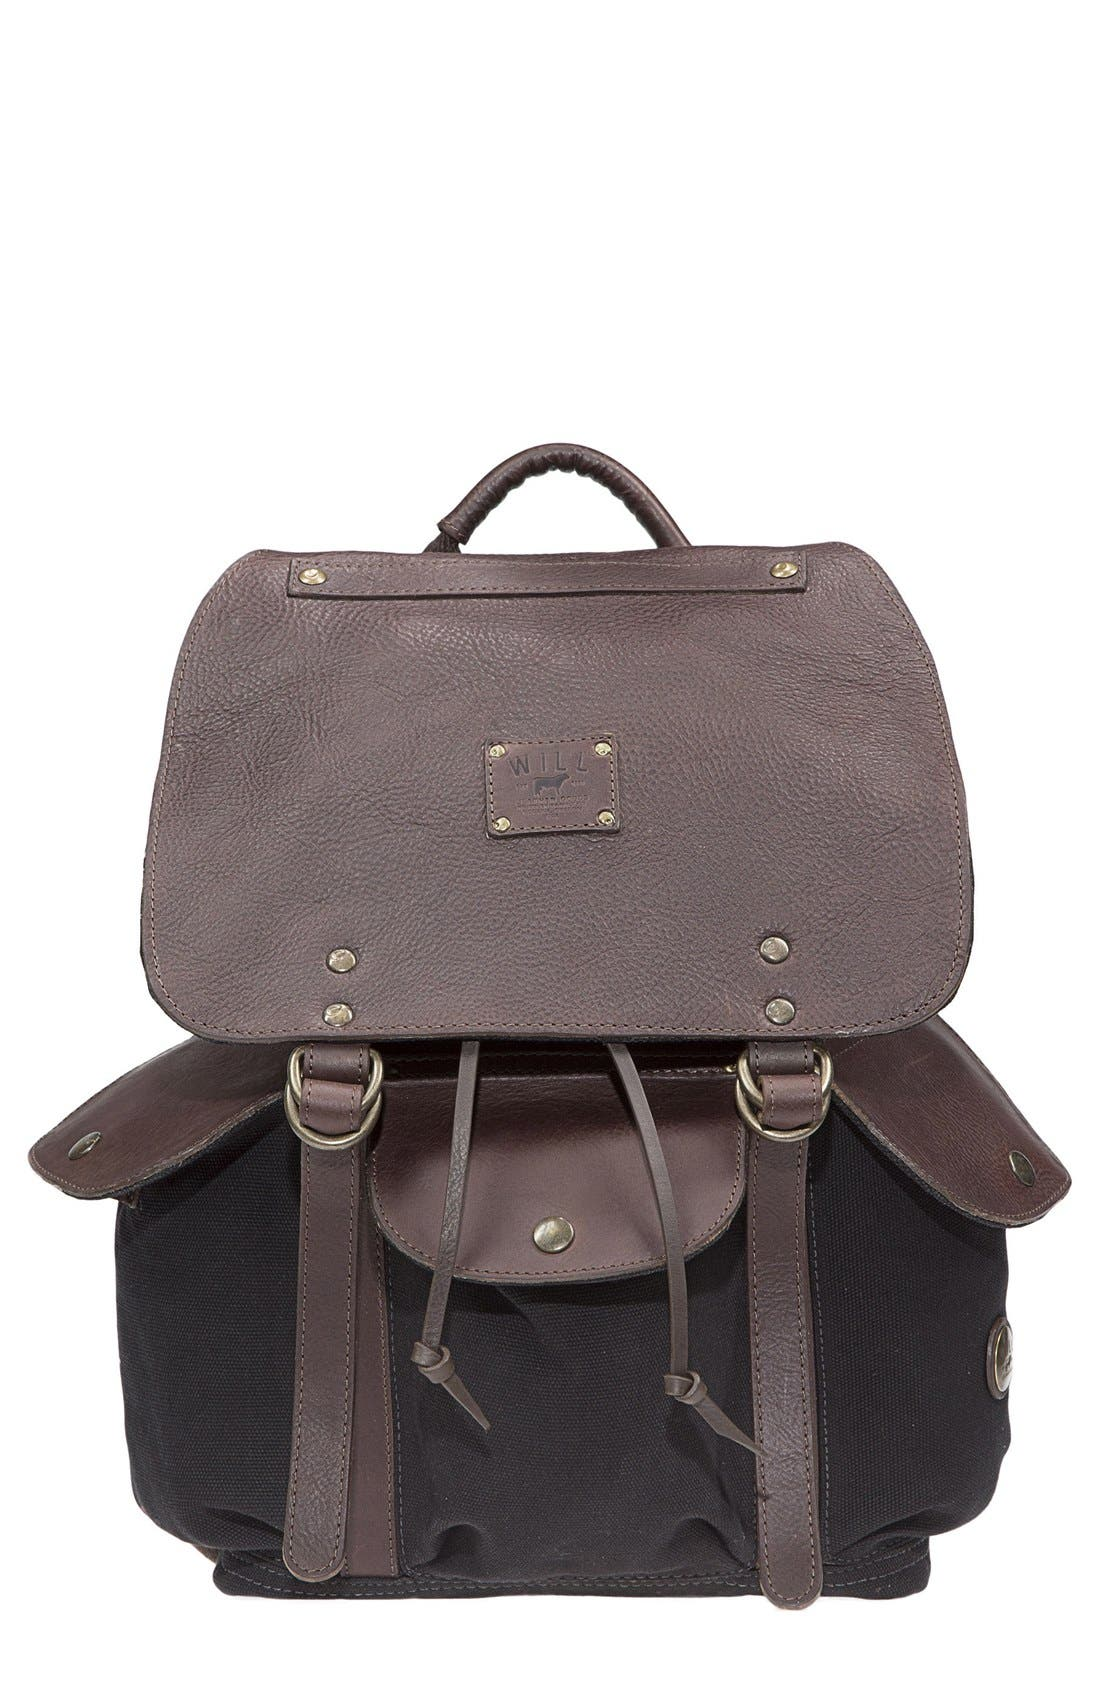 Main Image - Will Leather Goods 'Lennon' Backpack